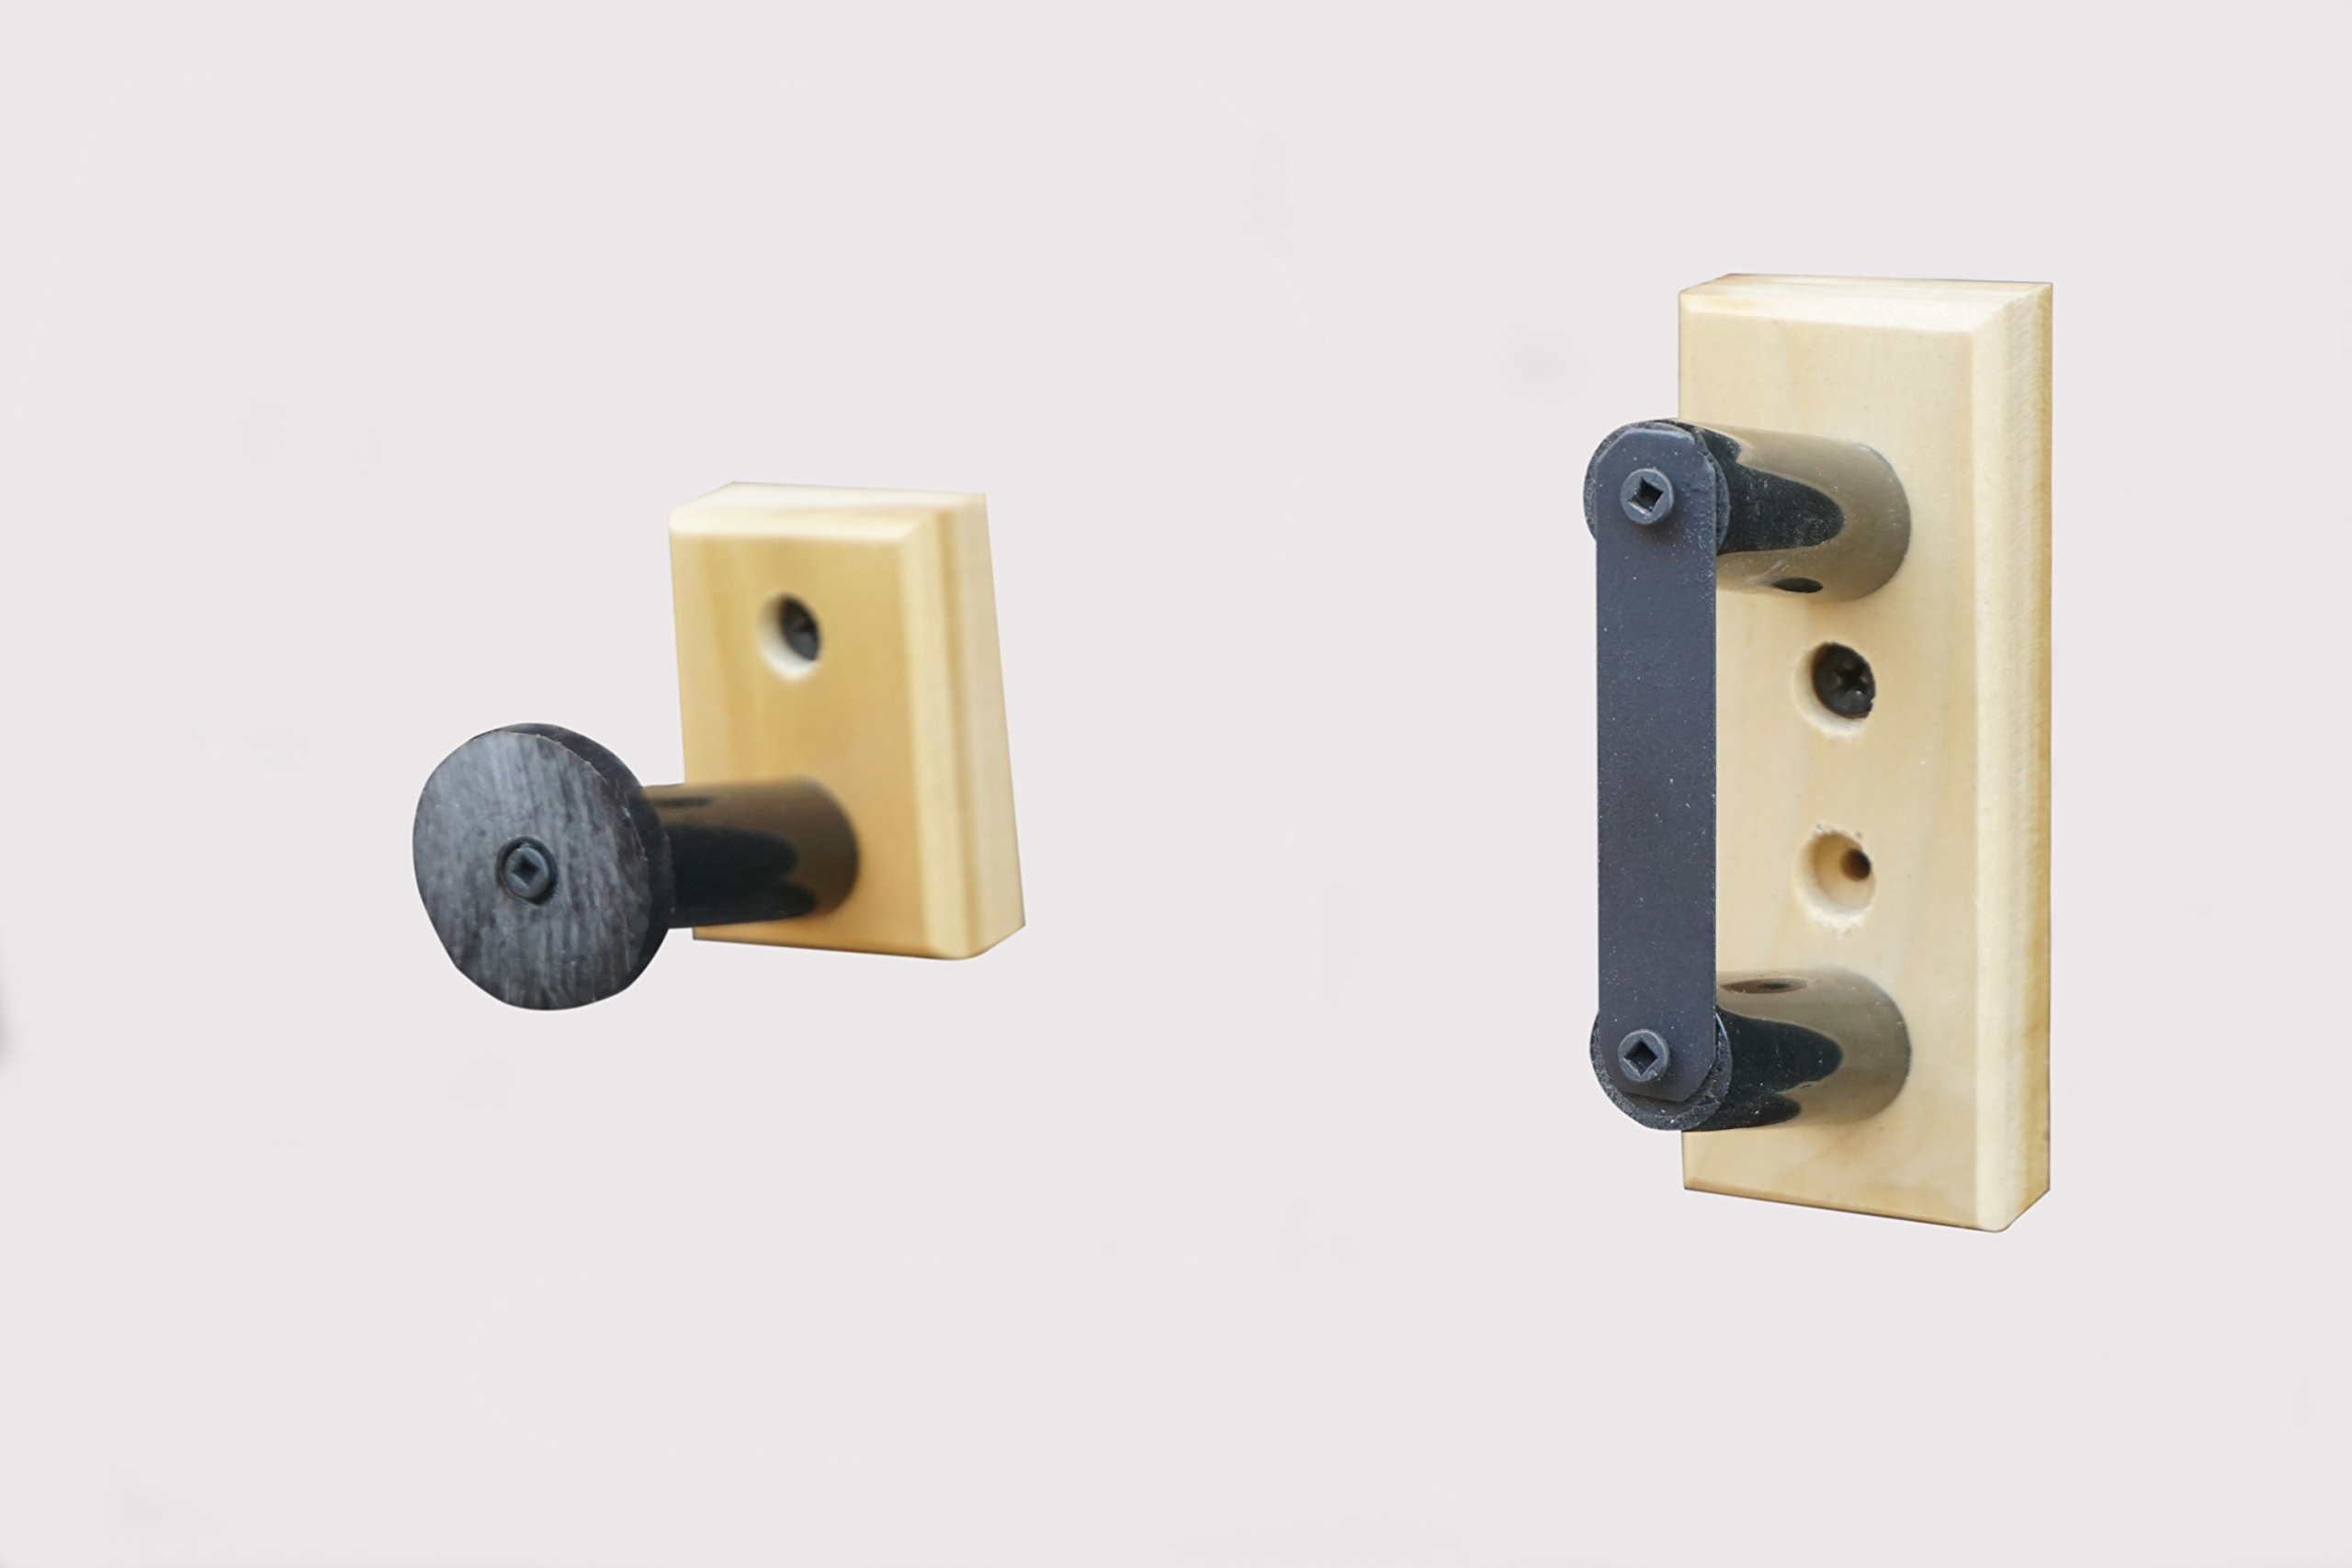 Standard Horizontal Wall Mount For a Shot Gun Rifle With A Security Bracket (Made in the USA) (Poplar)